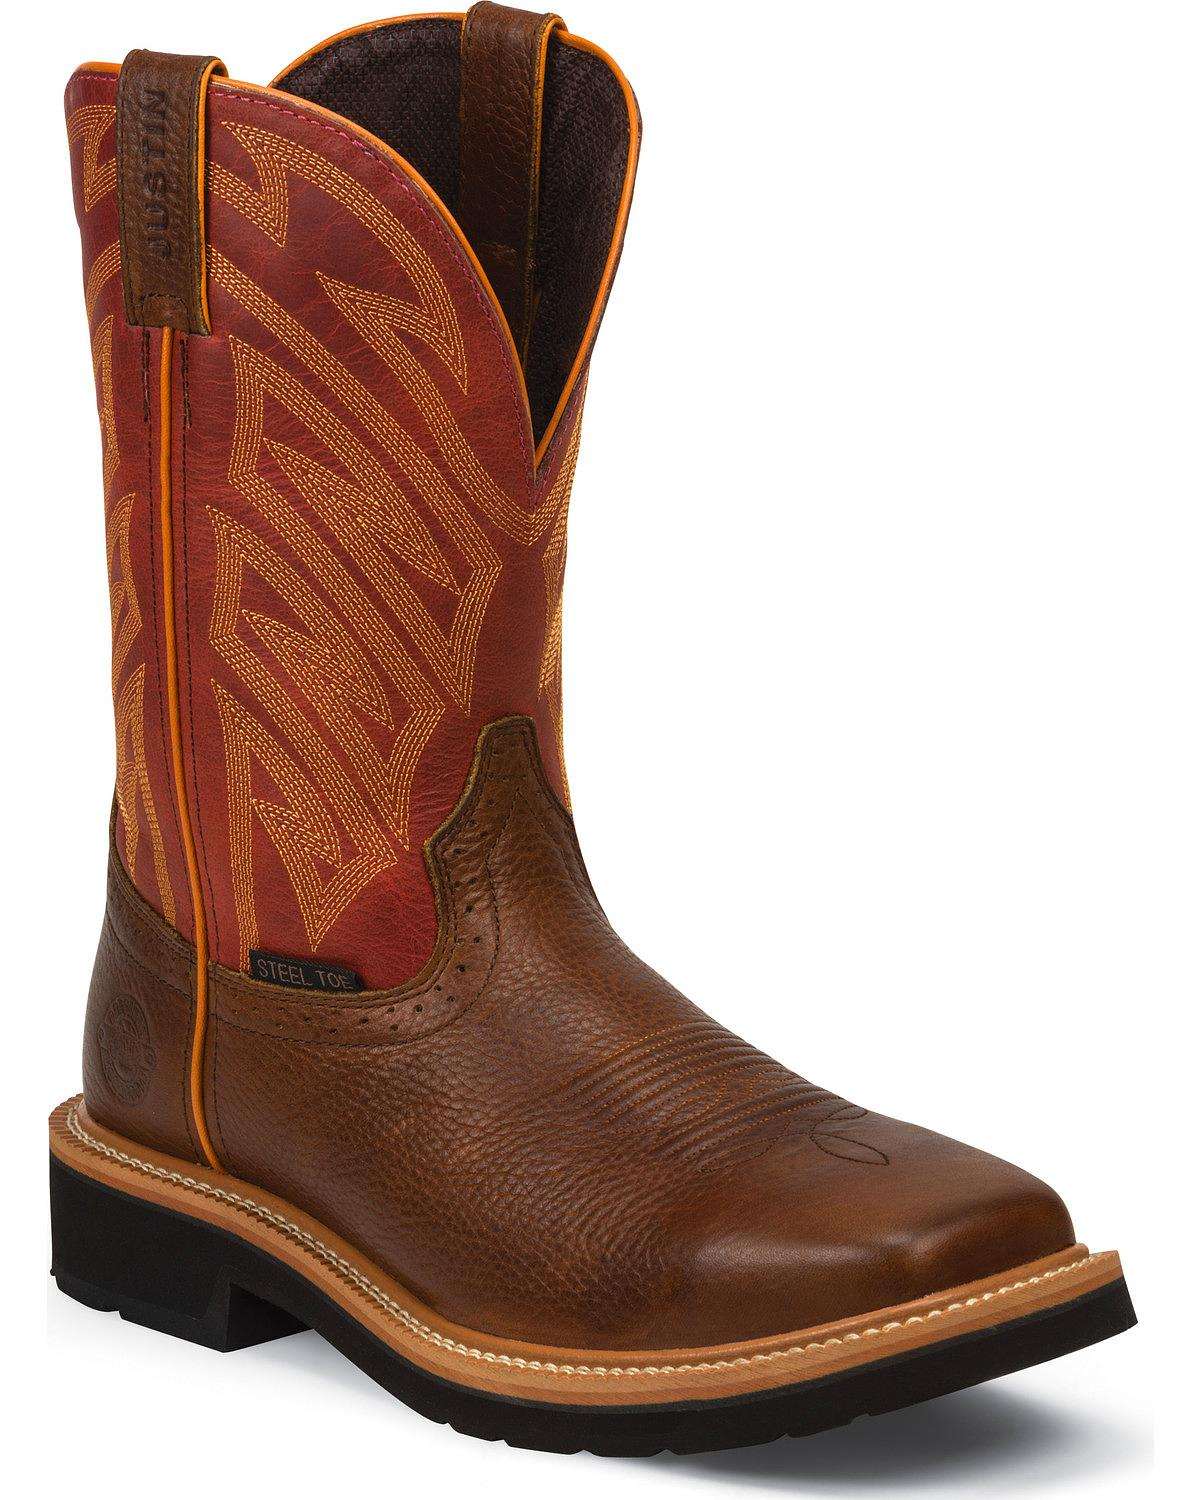 Jow Men S Justin Original Work Boot Stampede Square Steel